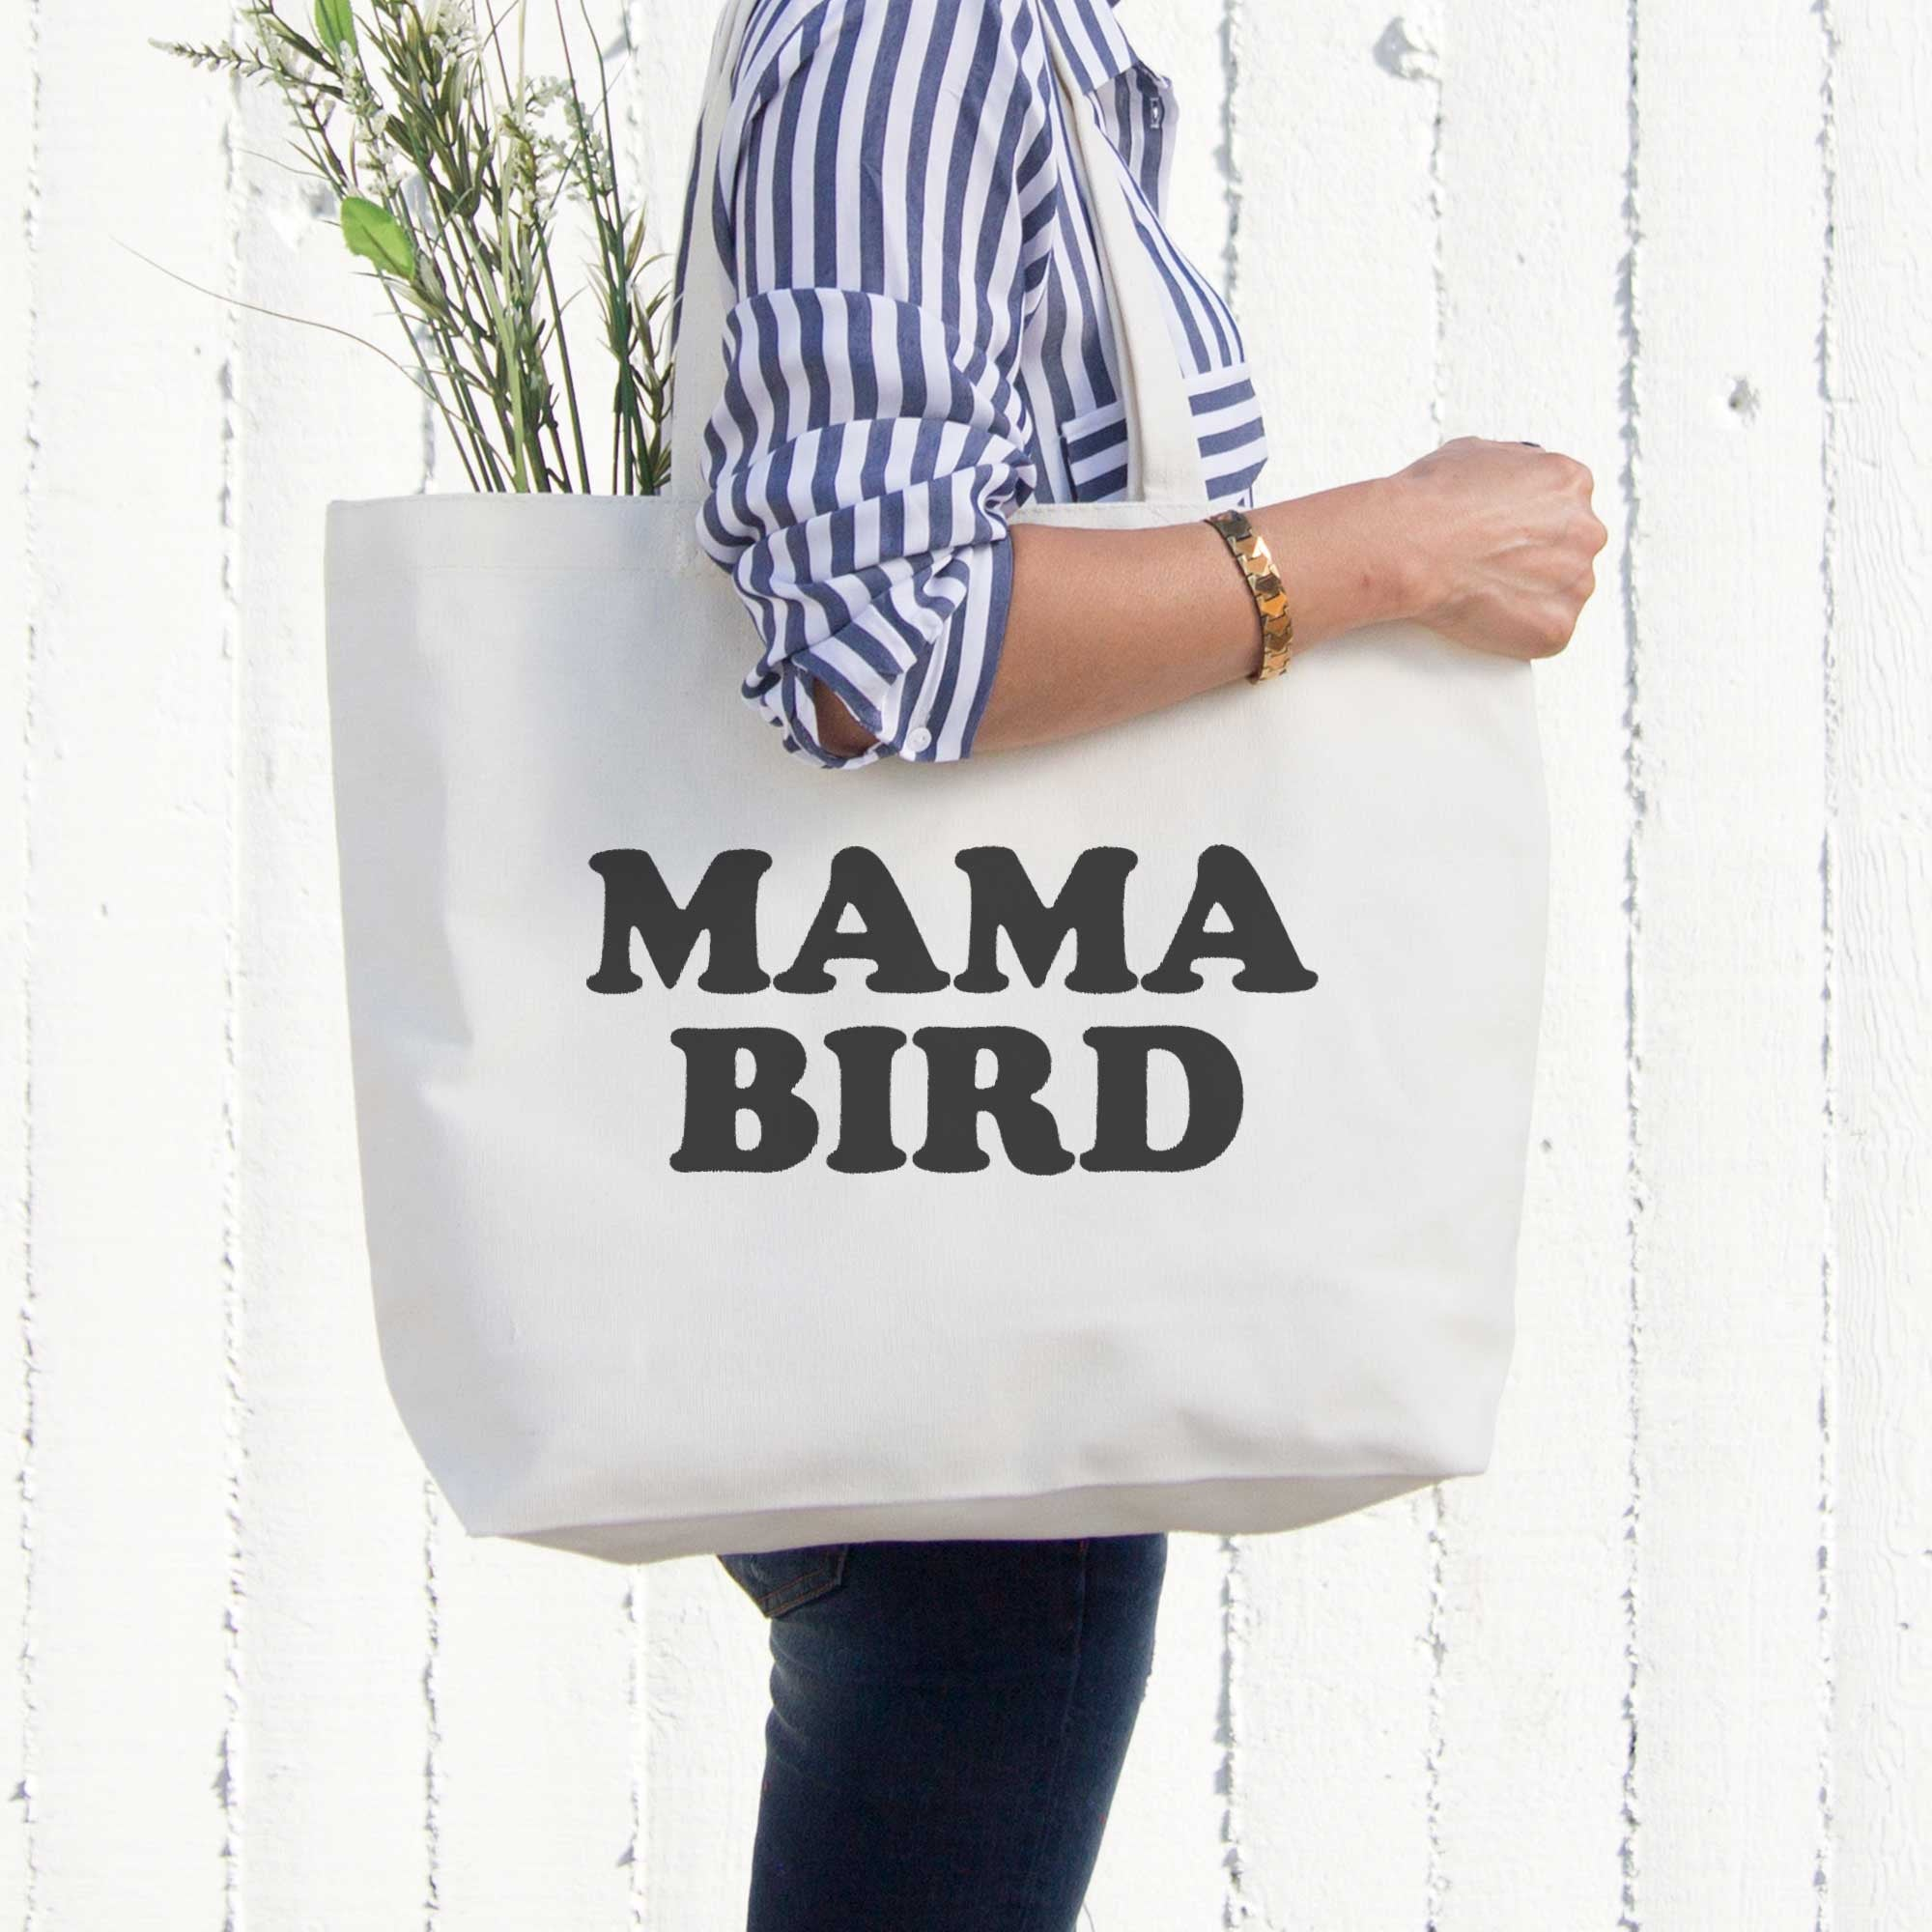 5e703eaddaa Mama Bird Canvas Bag Grocery Diaper Book Bags Gifts For Mom Mothers ...